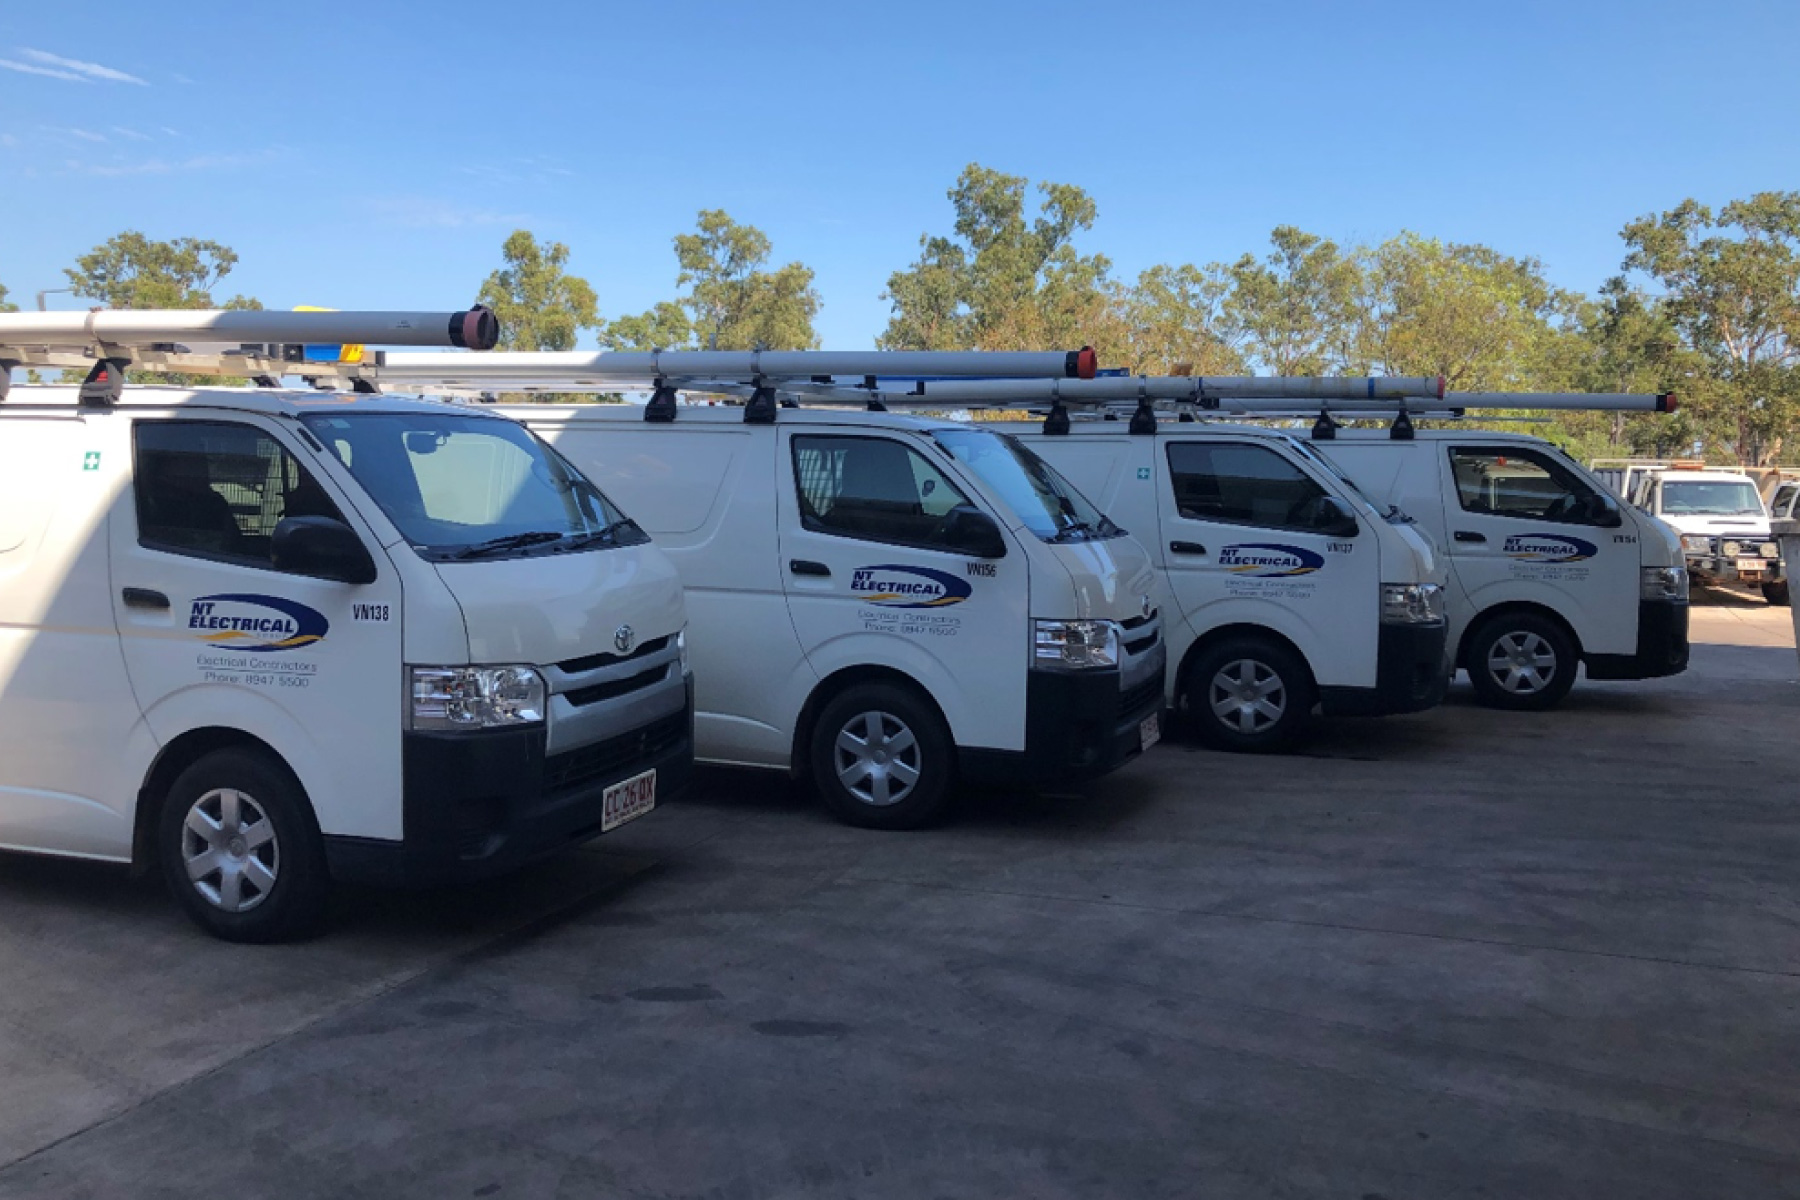 Northern Territory Electrical Group - Electrical Technician vans parked side by side.